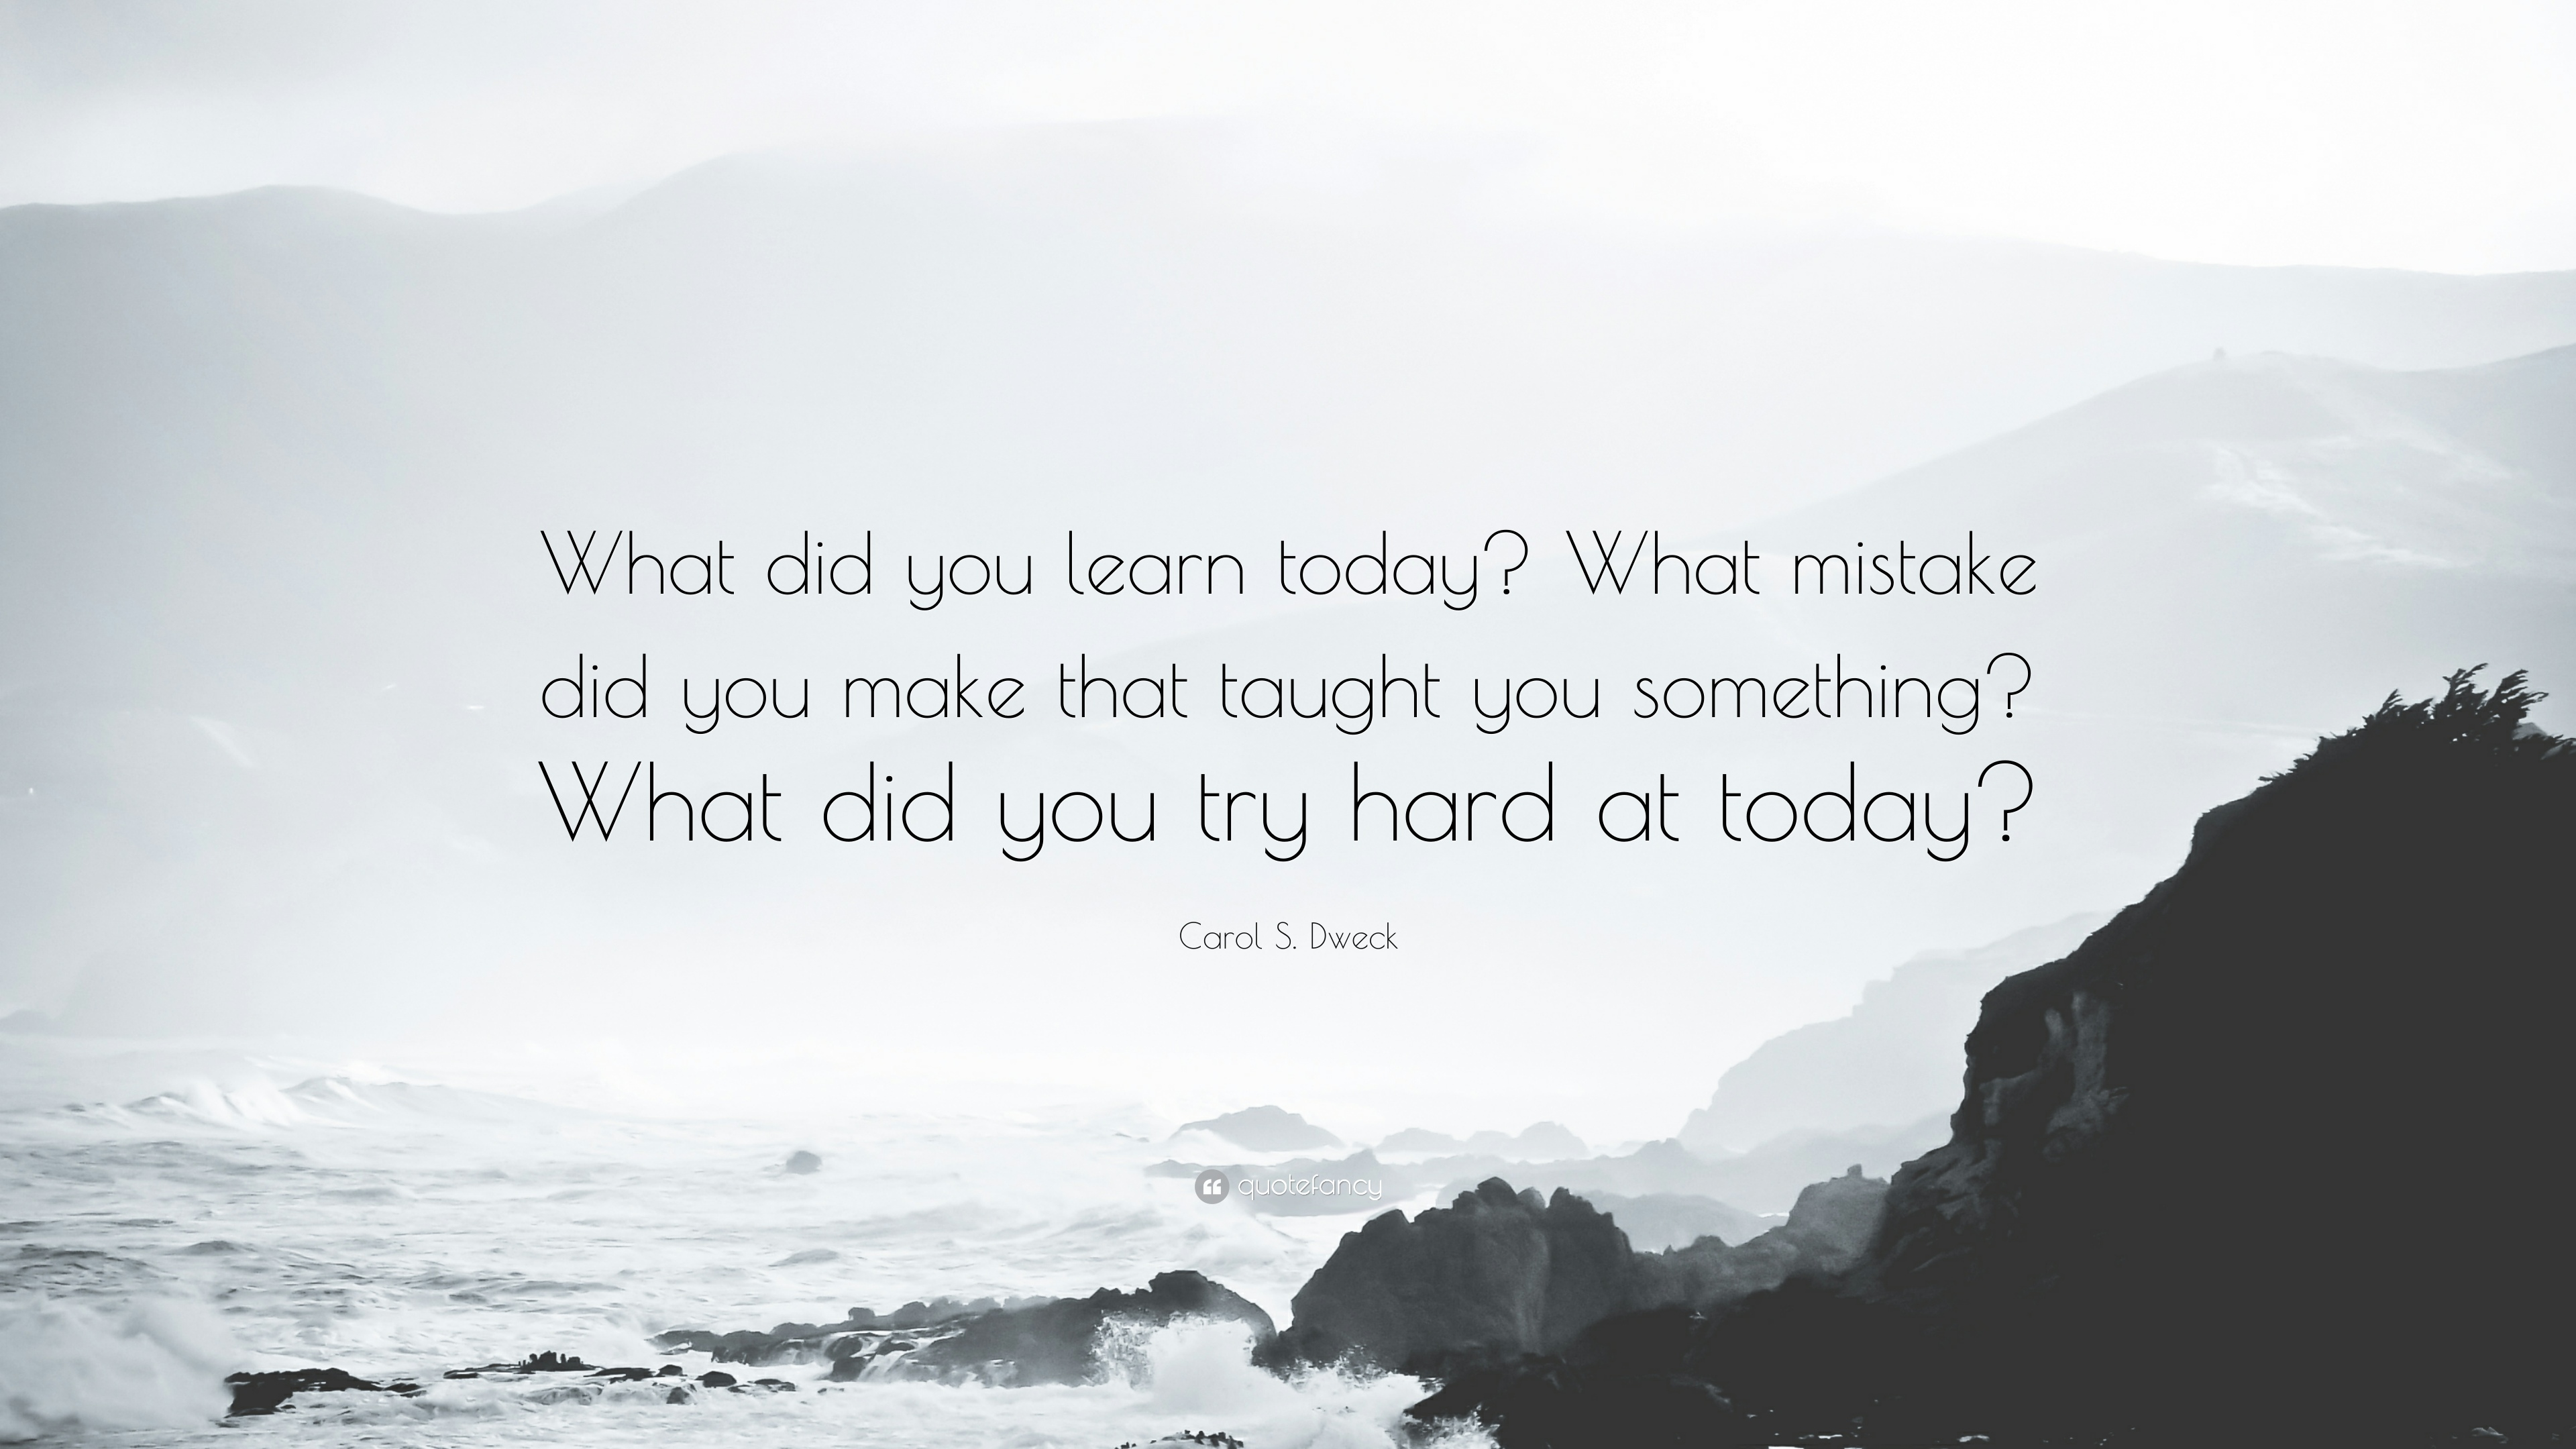 a mistake that taught you an You made a mistake is this how you react june 8,  if you made a mistake, then you made a mistake but if you feel you have to lie about something to cover it up .